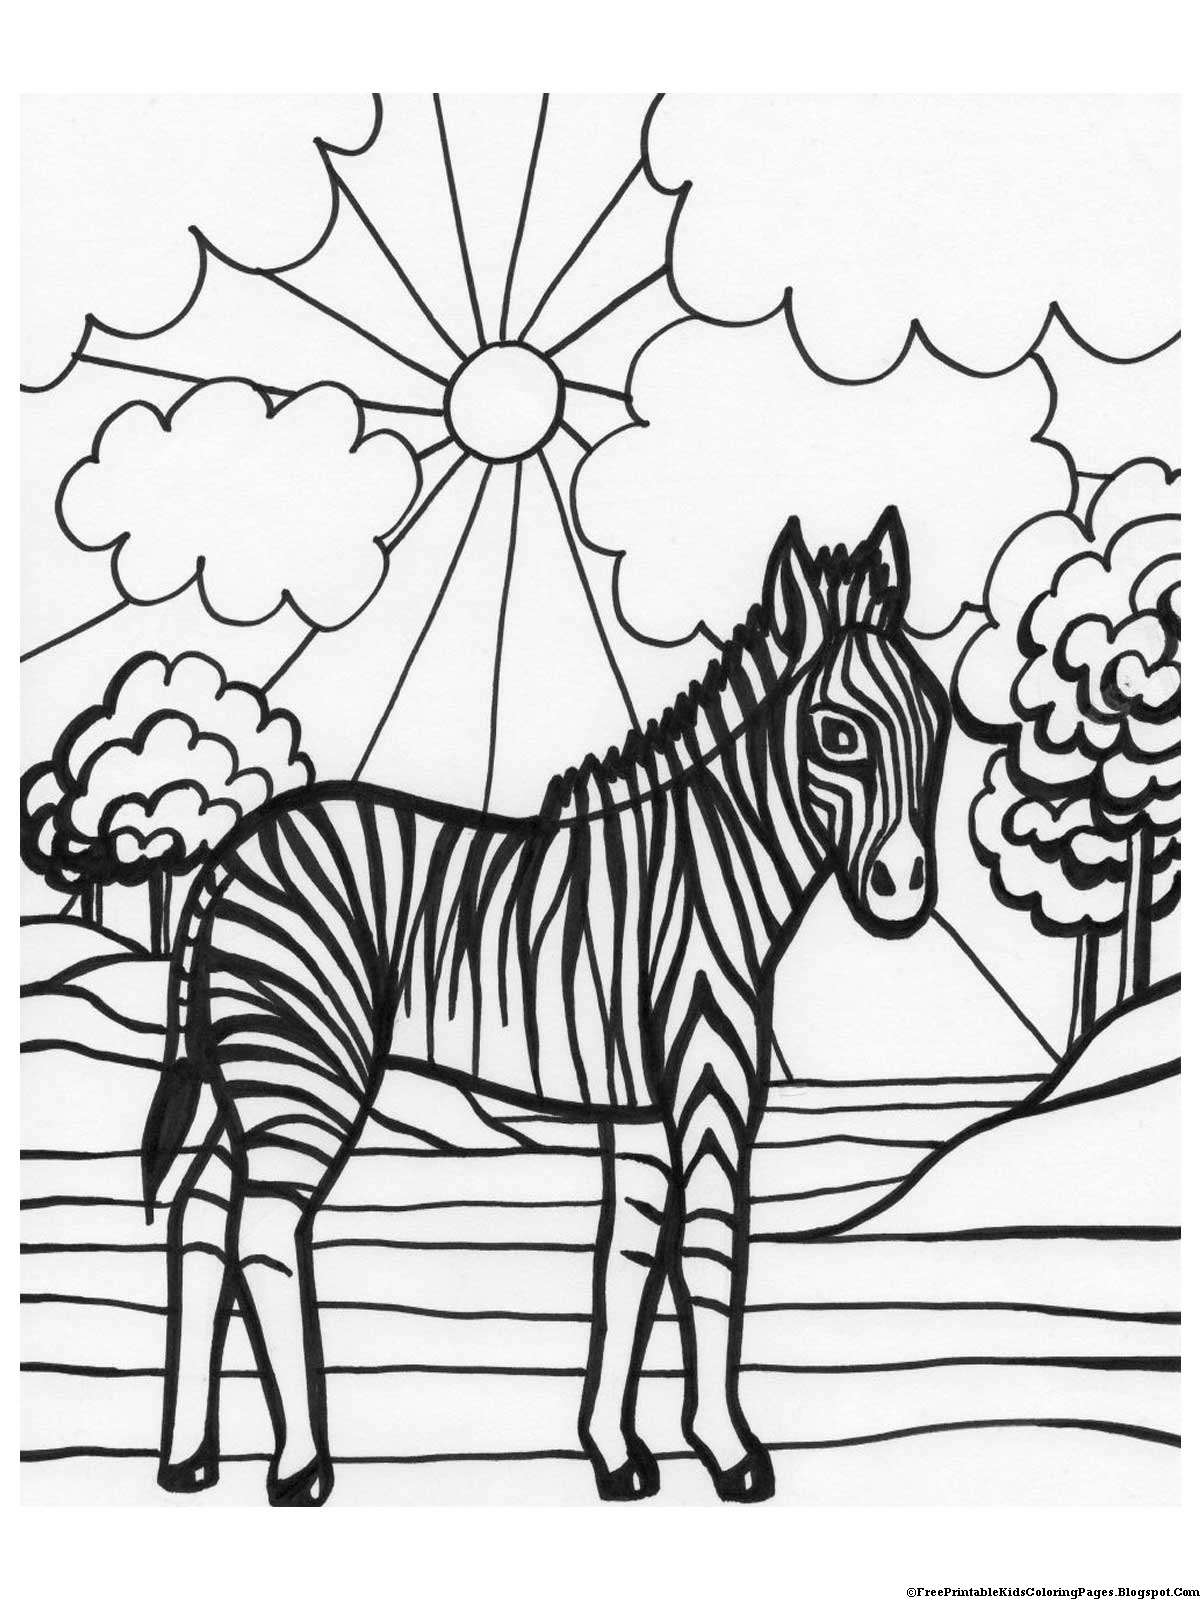 coloring images hard coloring pages for adults best coloring pages for kids images coloring